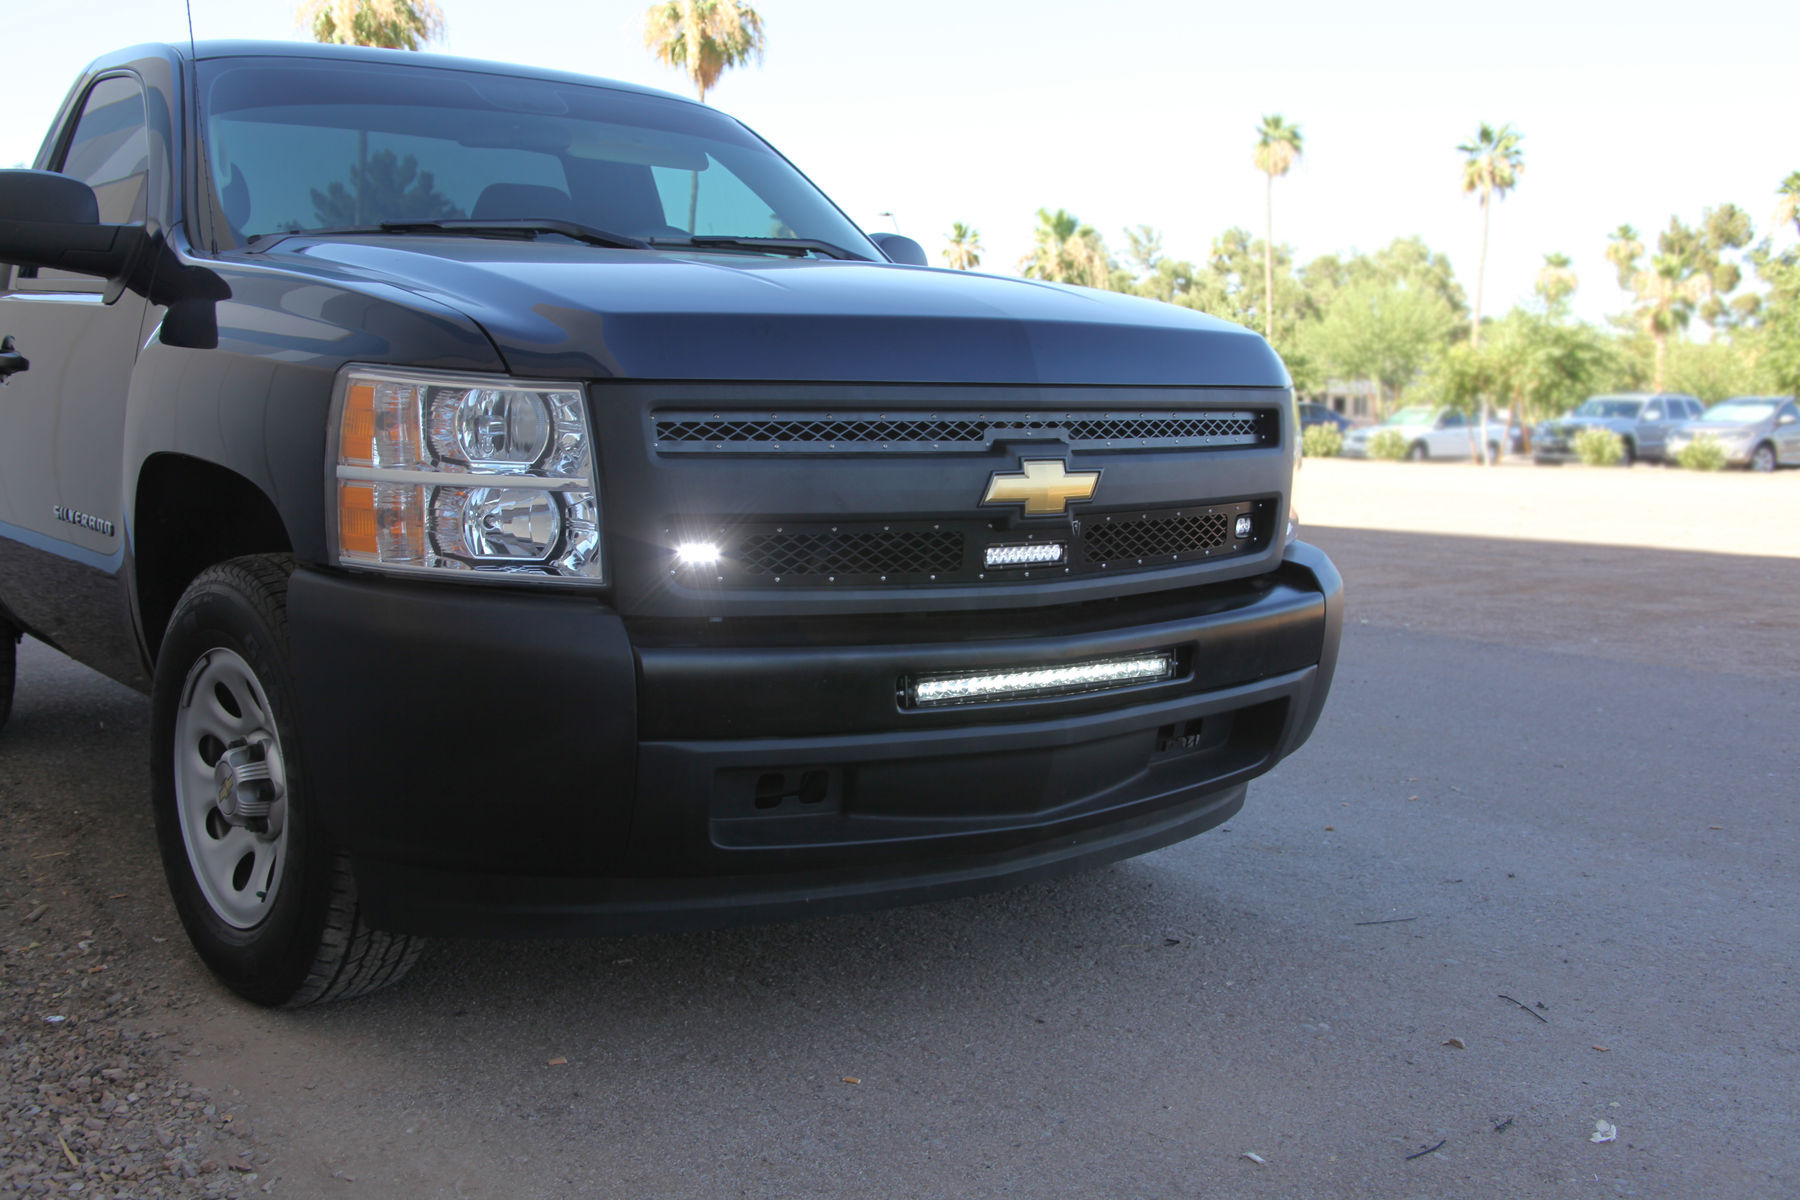 Chevrolet Silverado 1500 | 2011-2013 Chevrolet 1500 Rigid Industries LED Grille